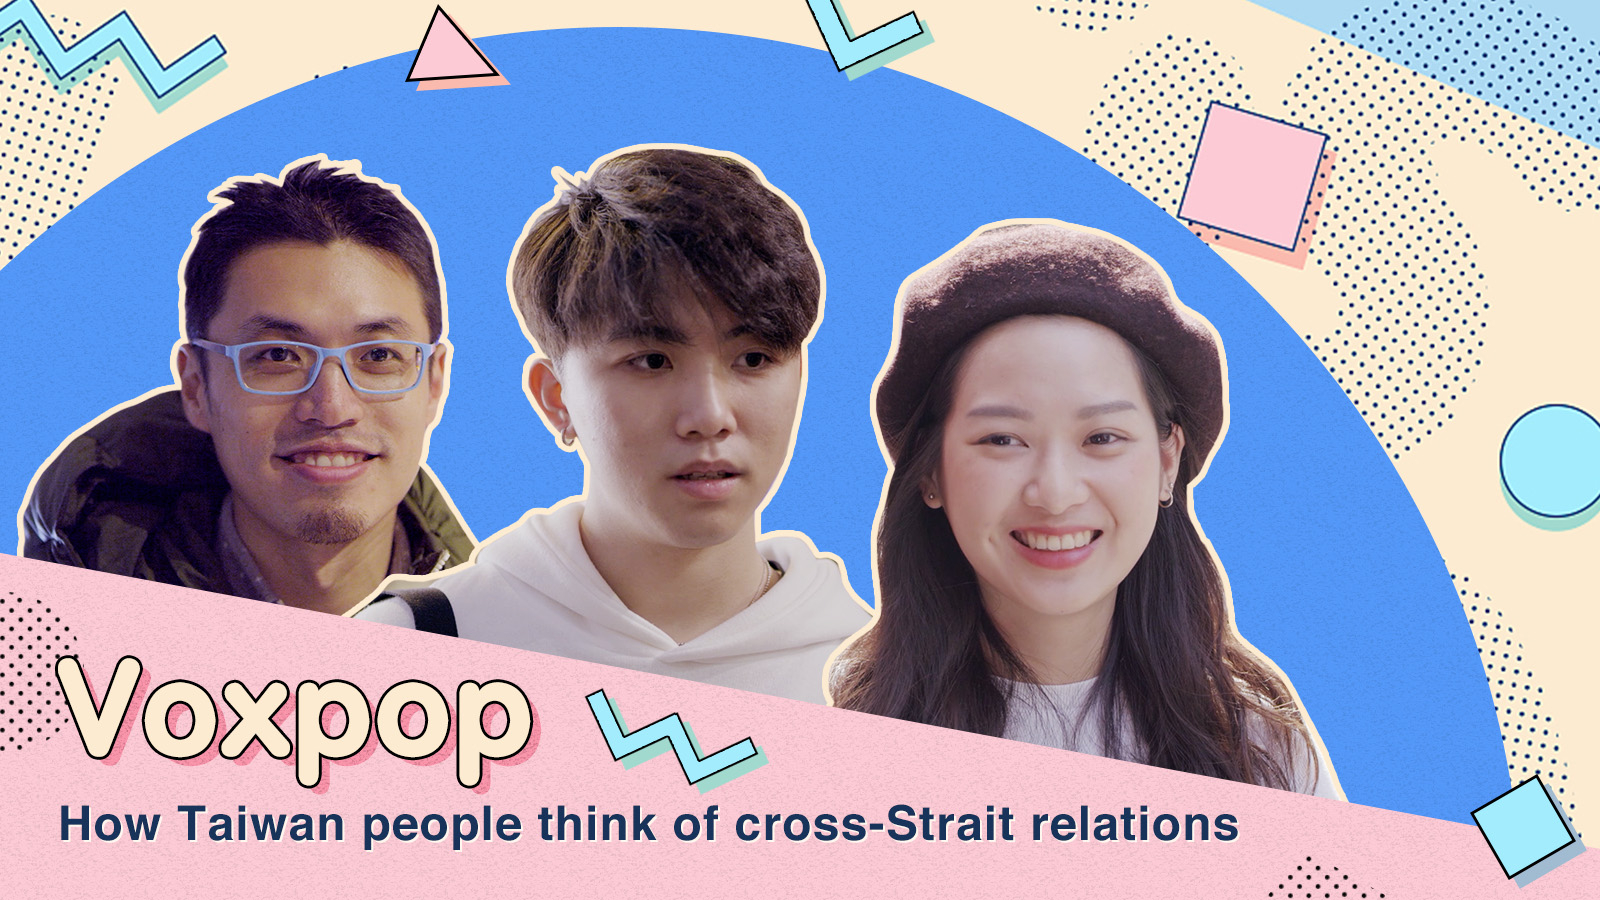 What do people in Taiwan think about cross-Strait relations?